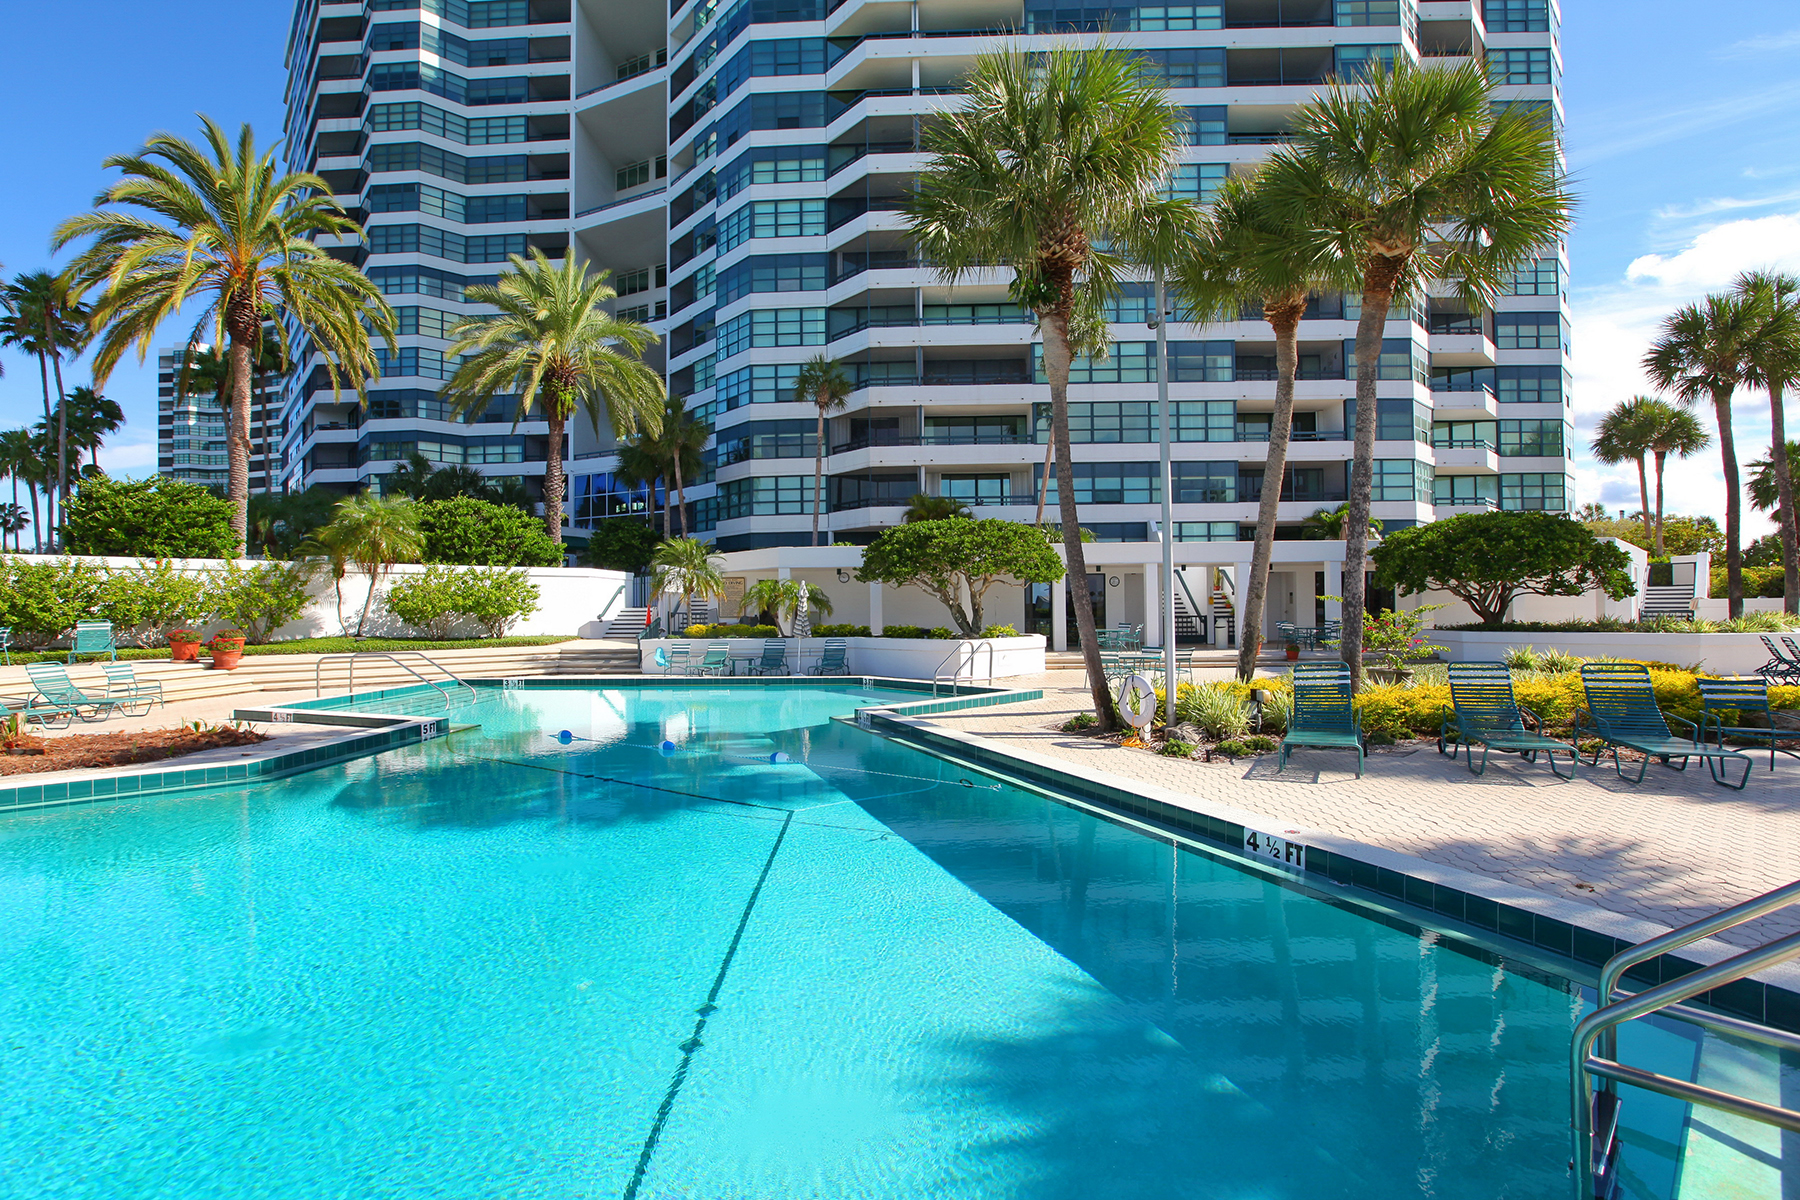 Condominio por un Venta en CONDO ON THE BAY 888 Blvd Of The Arts 1901, 1902, Sarasota, Florida, 34236 Estados Unidos